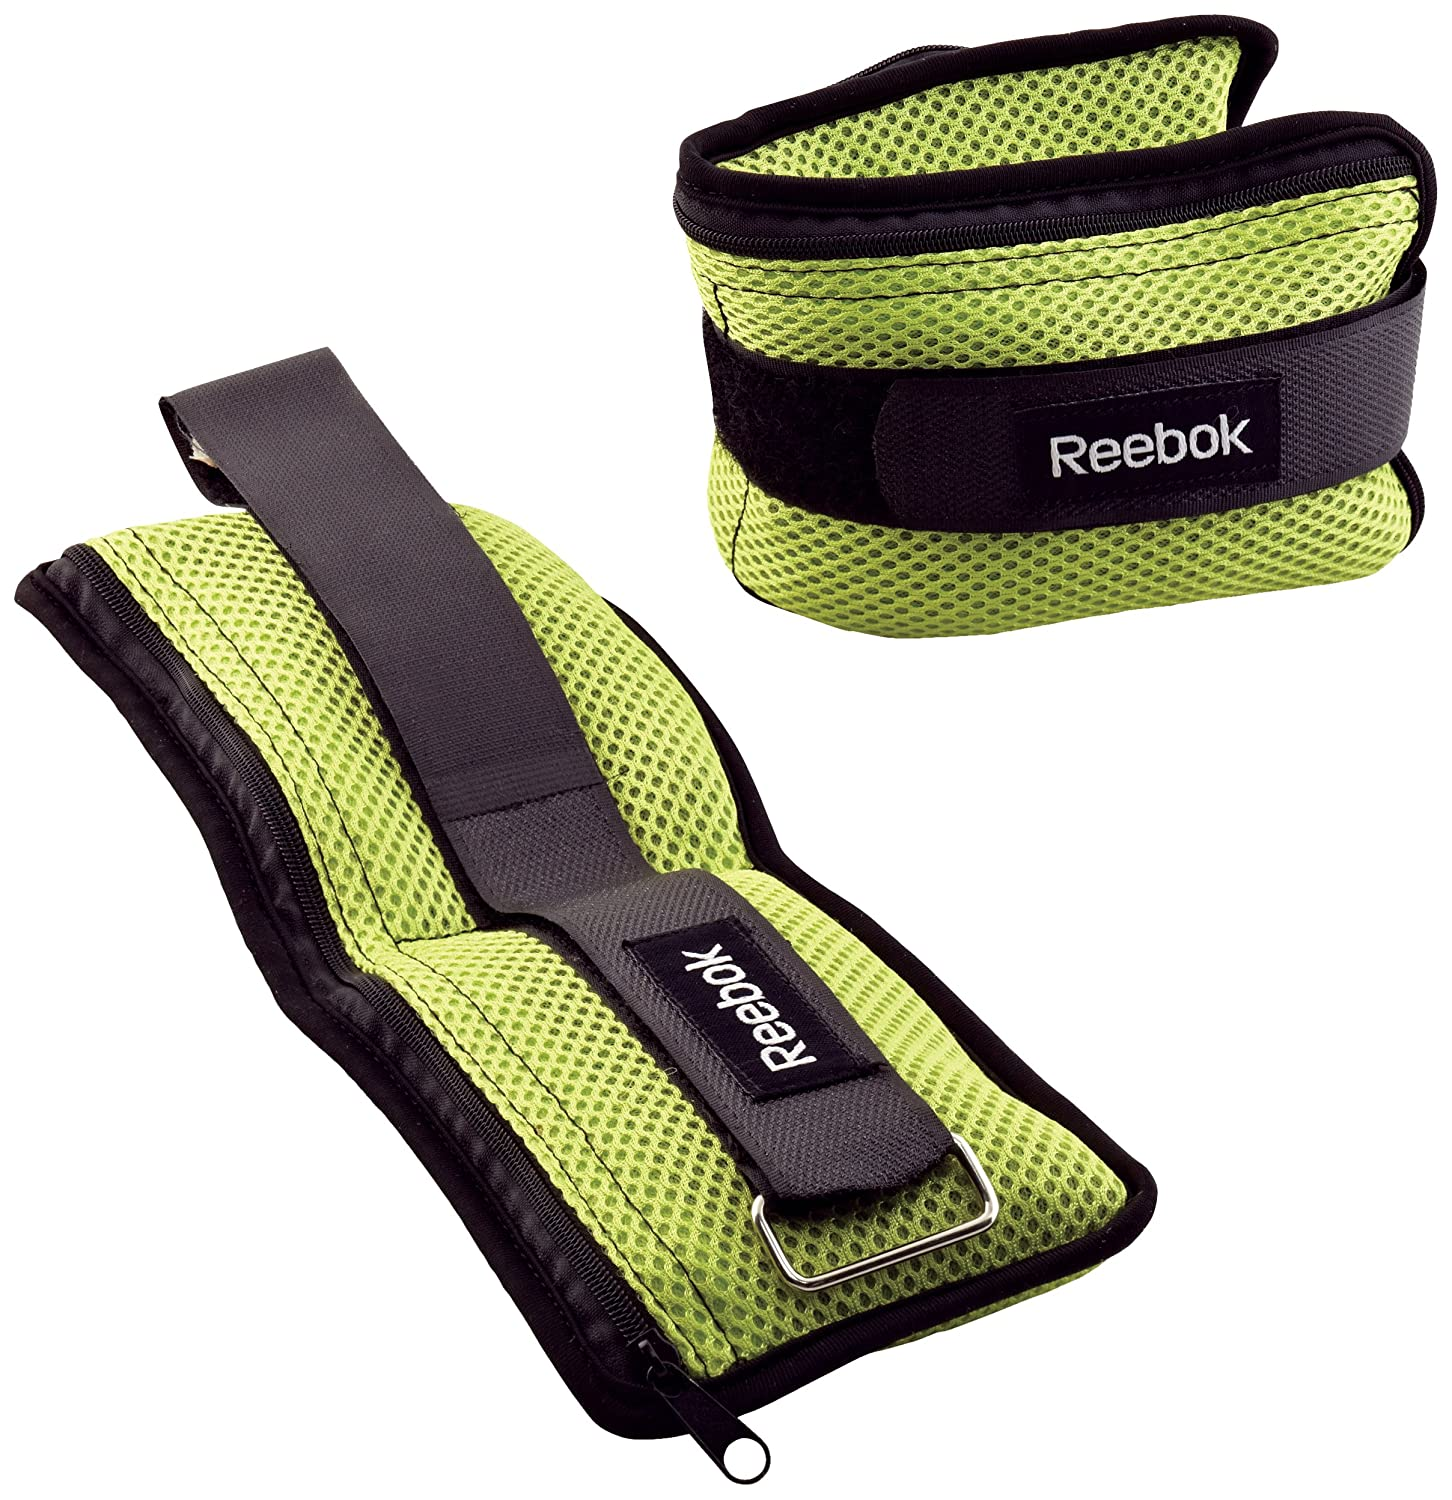 Reebok Adjustable Ankle Weight Sets Gaiam 05-55079 Misc. Product